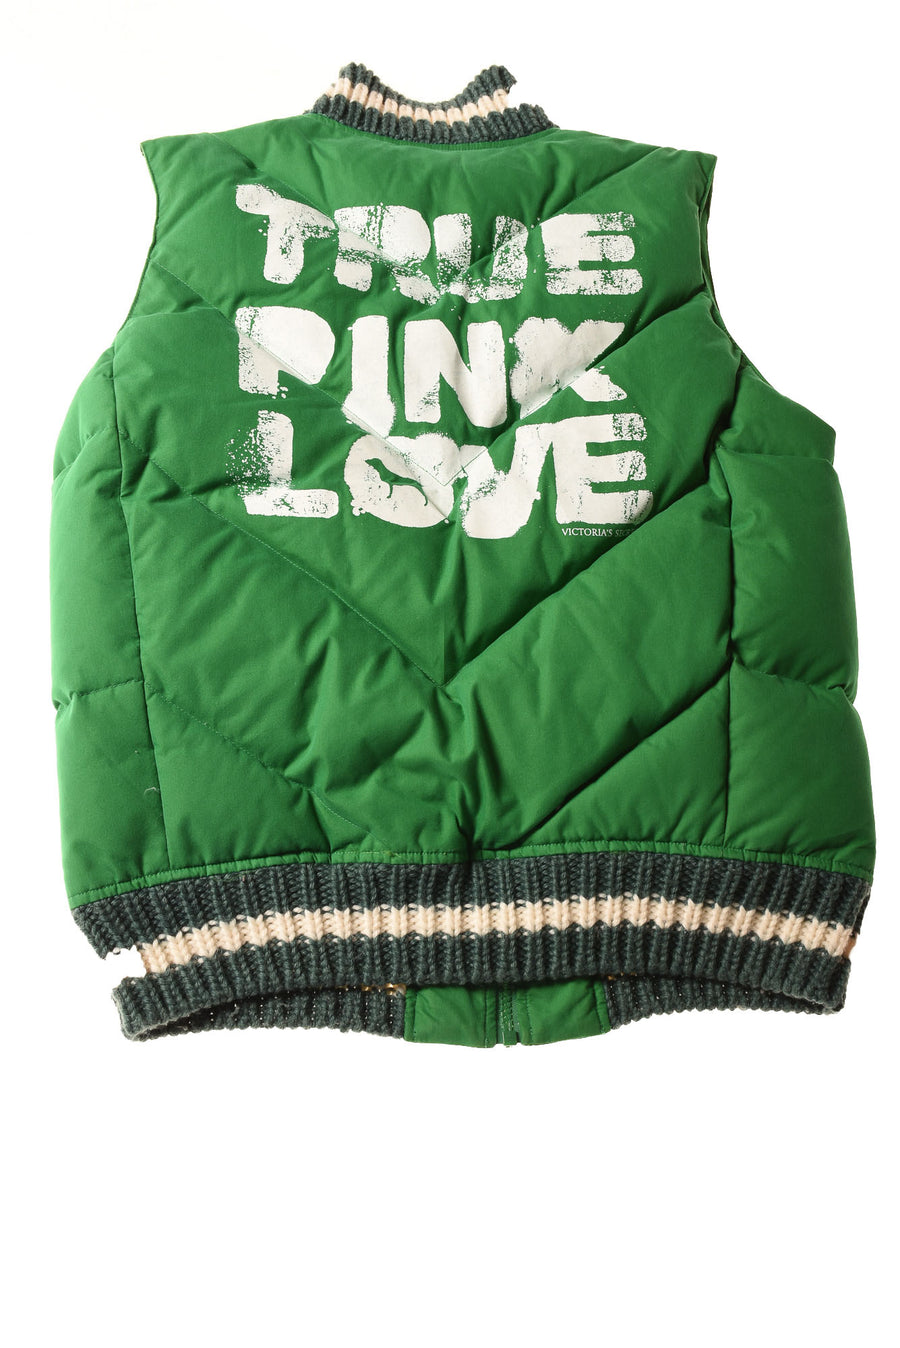 USED Victoria's Secret Women's Coat X-Small Green